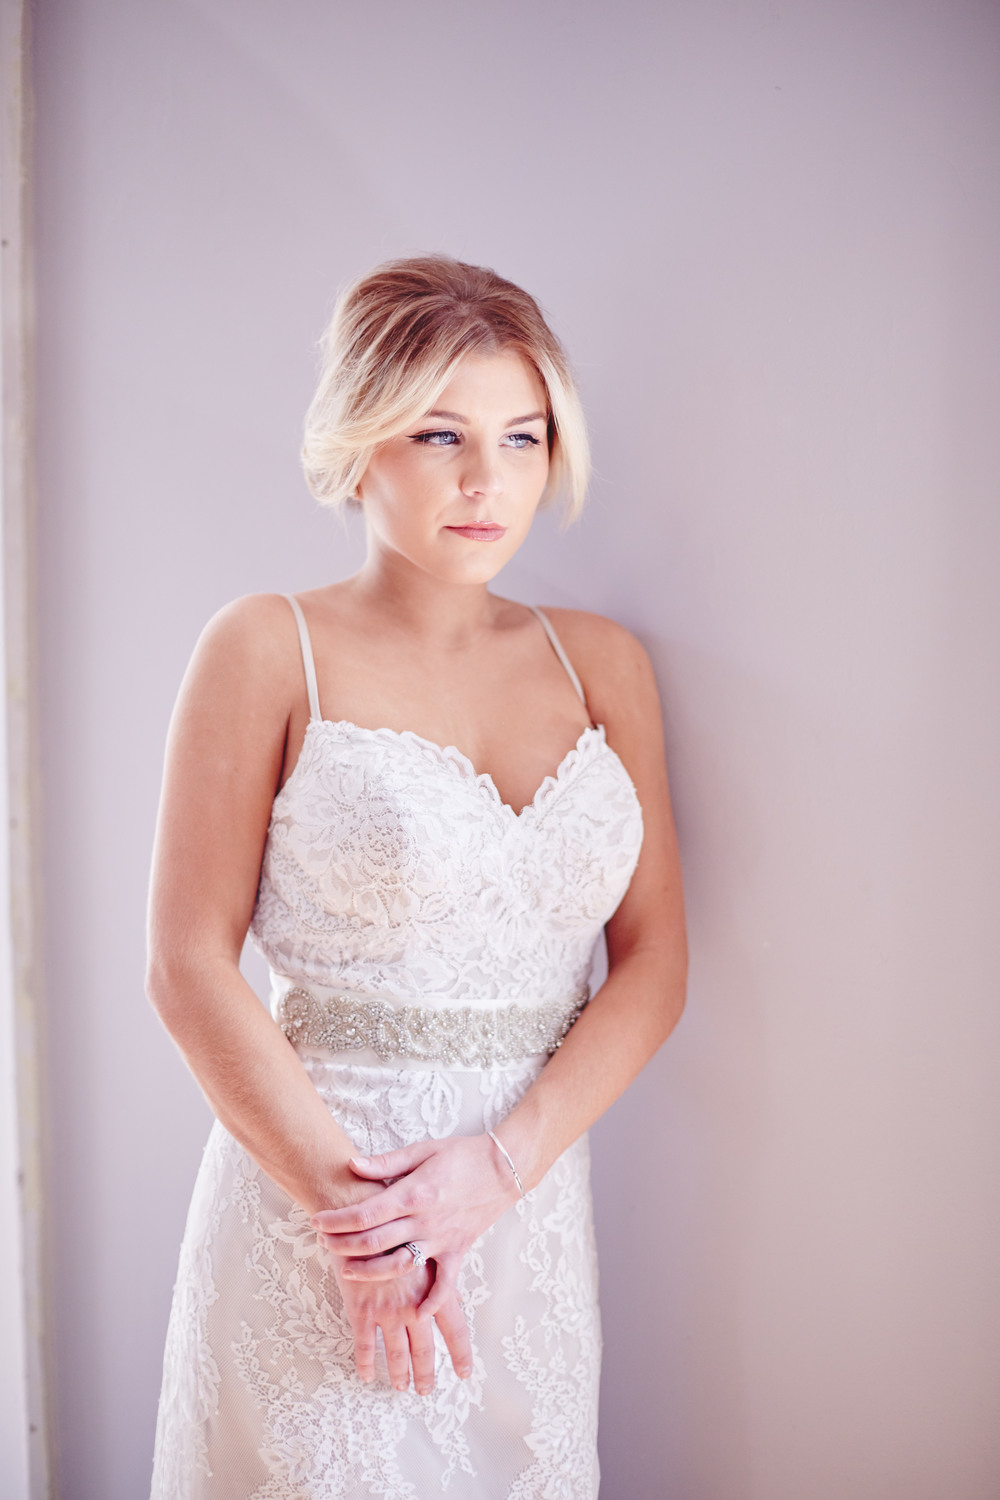 Styled_Session_Becca_Bridal_Portraits_Sarah_Tau_Photography_HOB_Studio_285 116.jpg